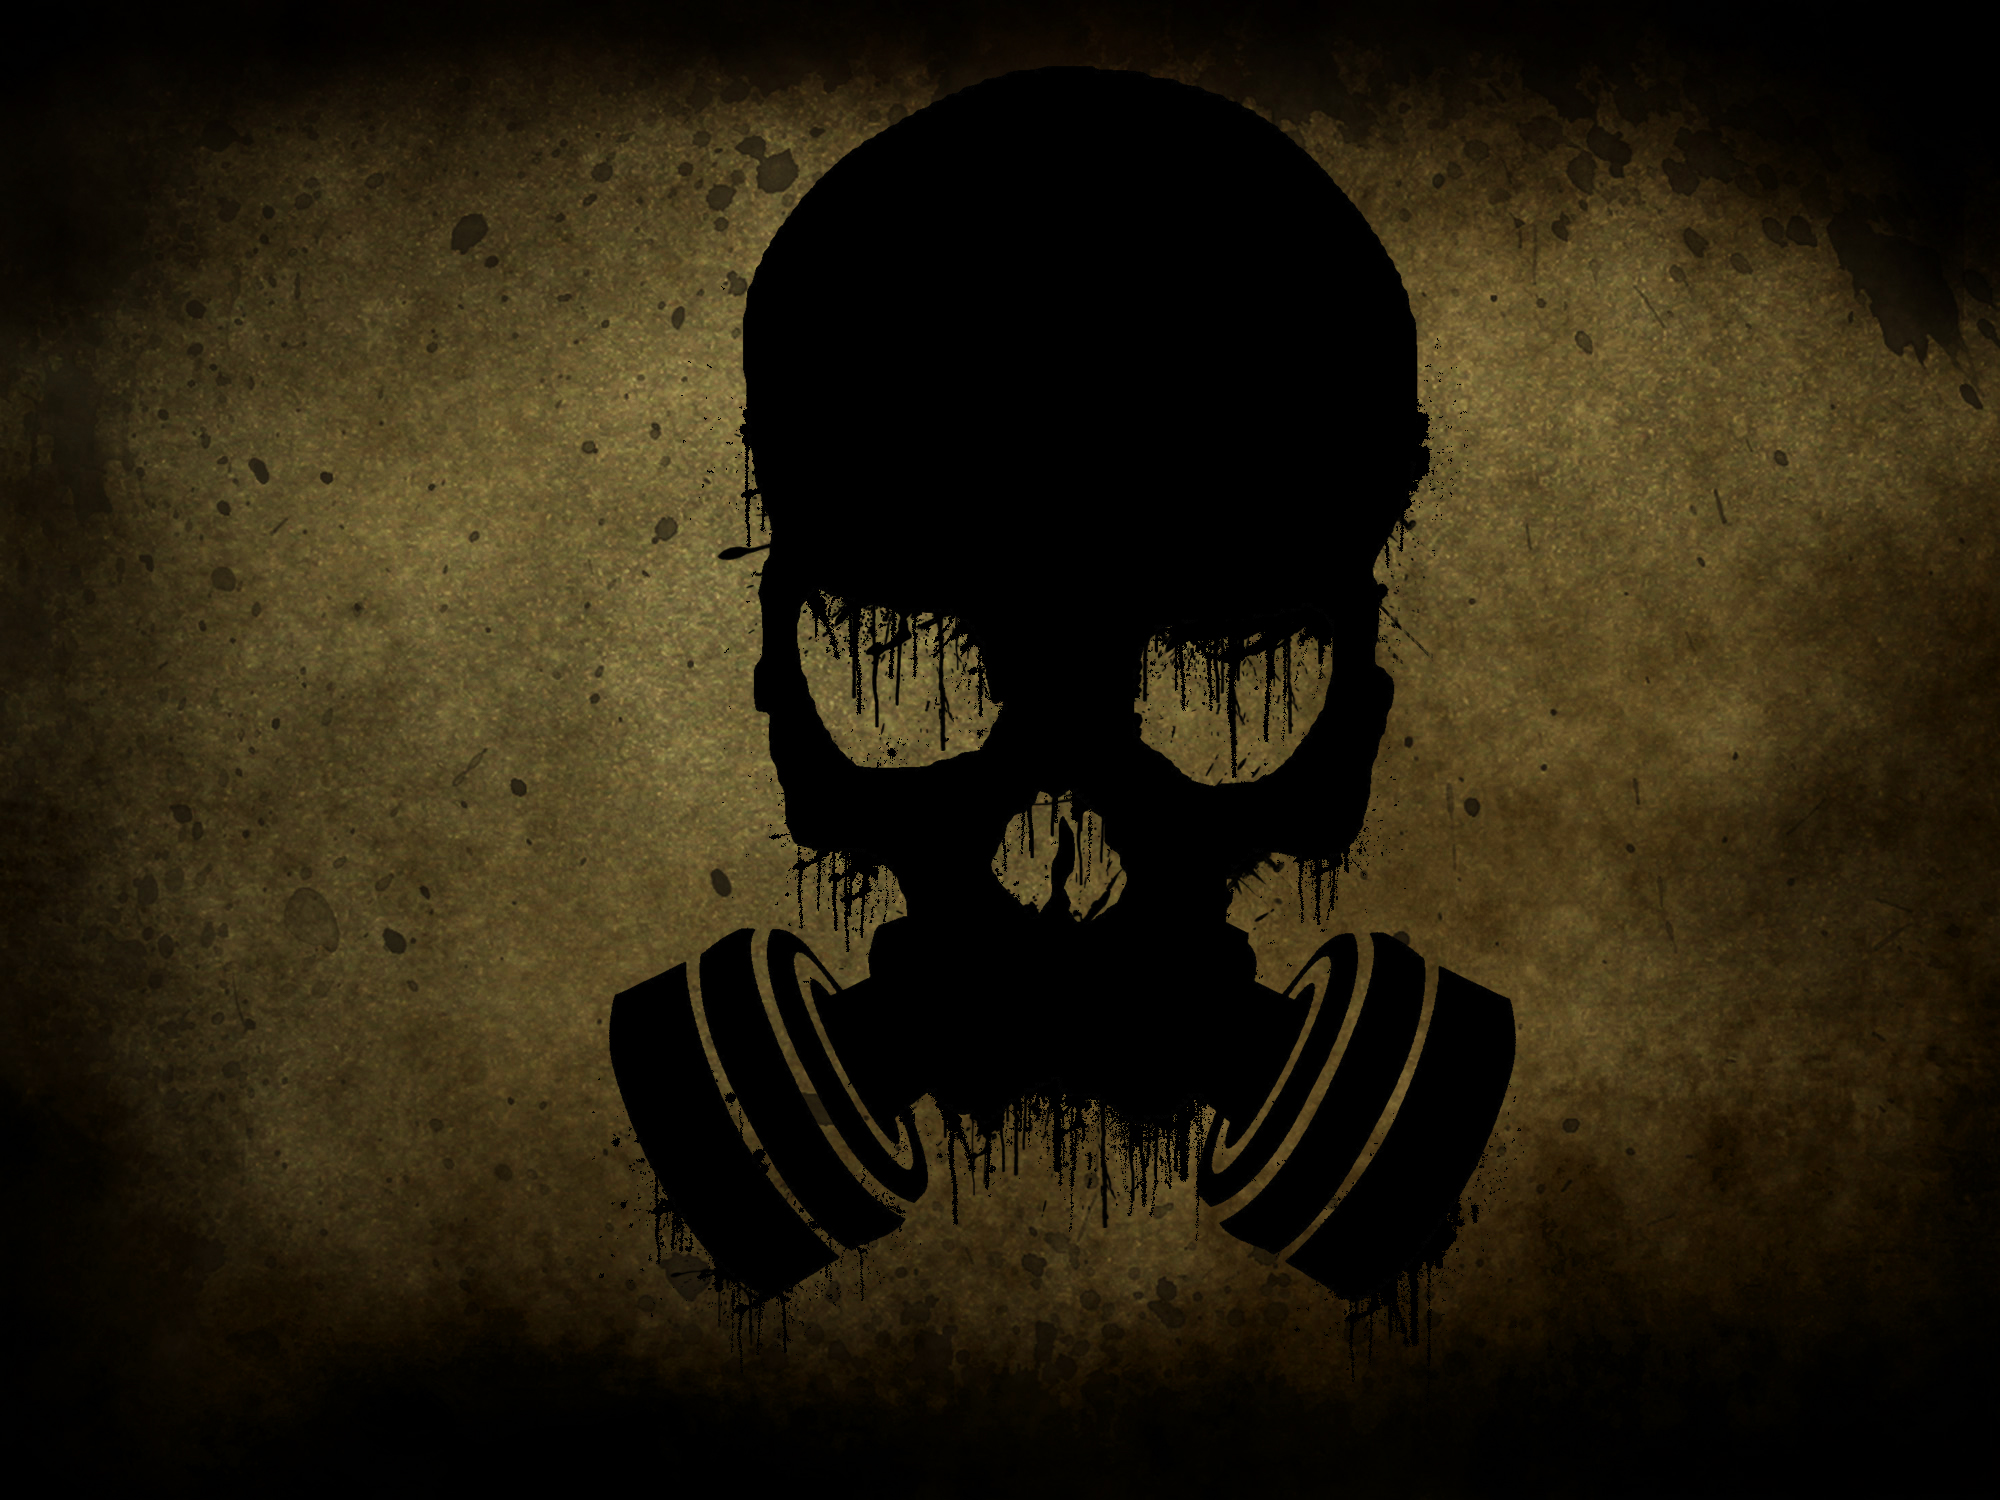 114 Gas Mask Hd Wallpapers Background Images Wallpaper Abyss